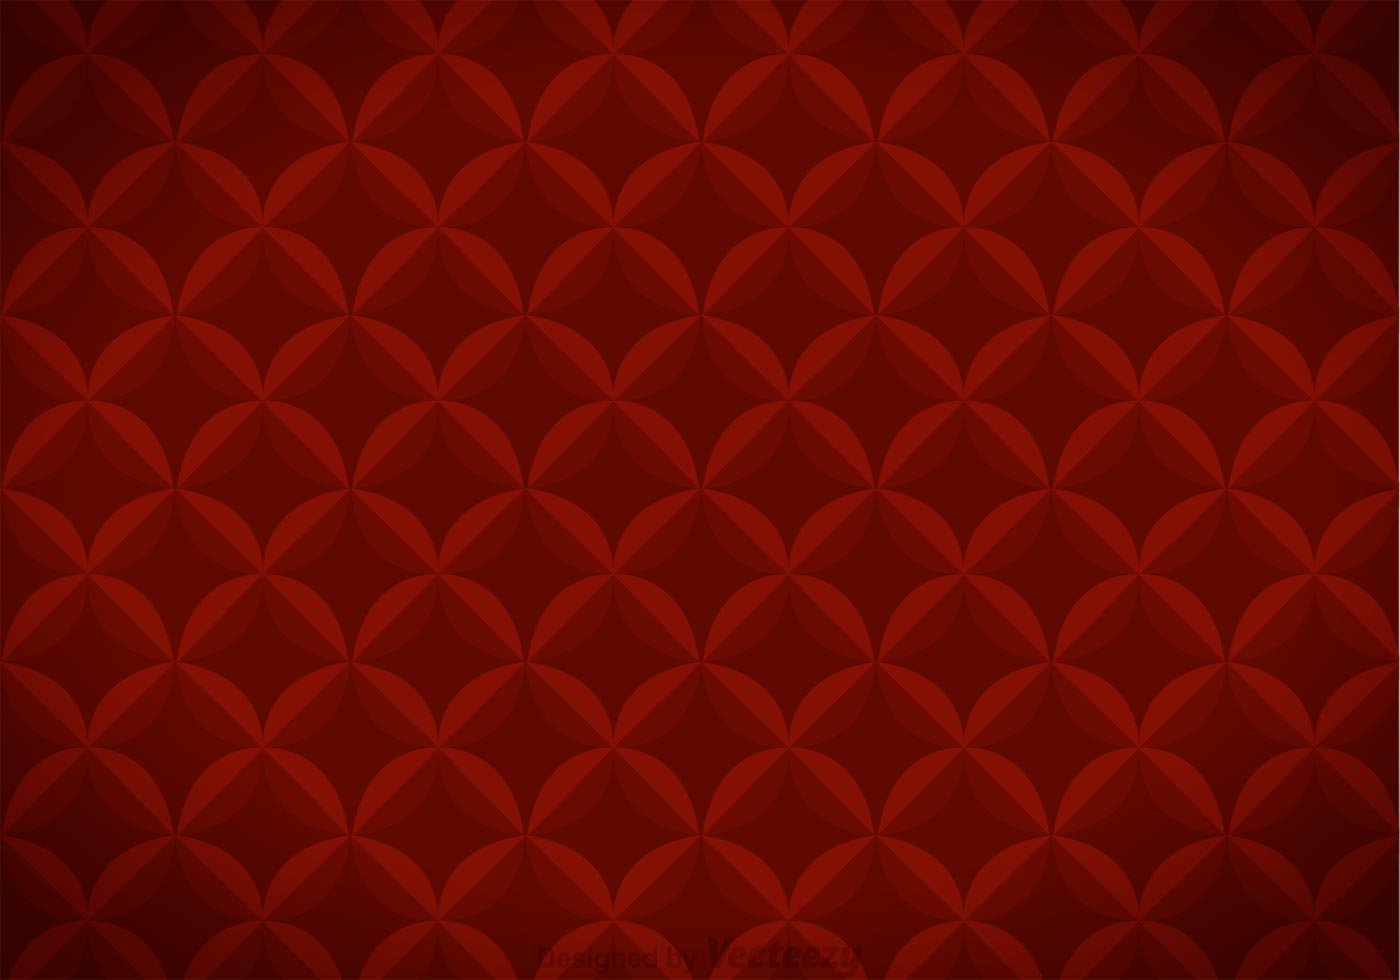 red maroon line background - photo #21